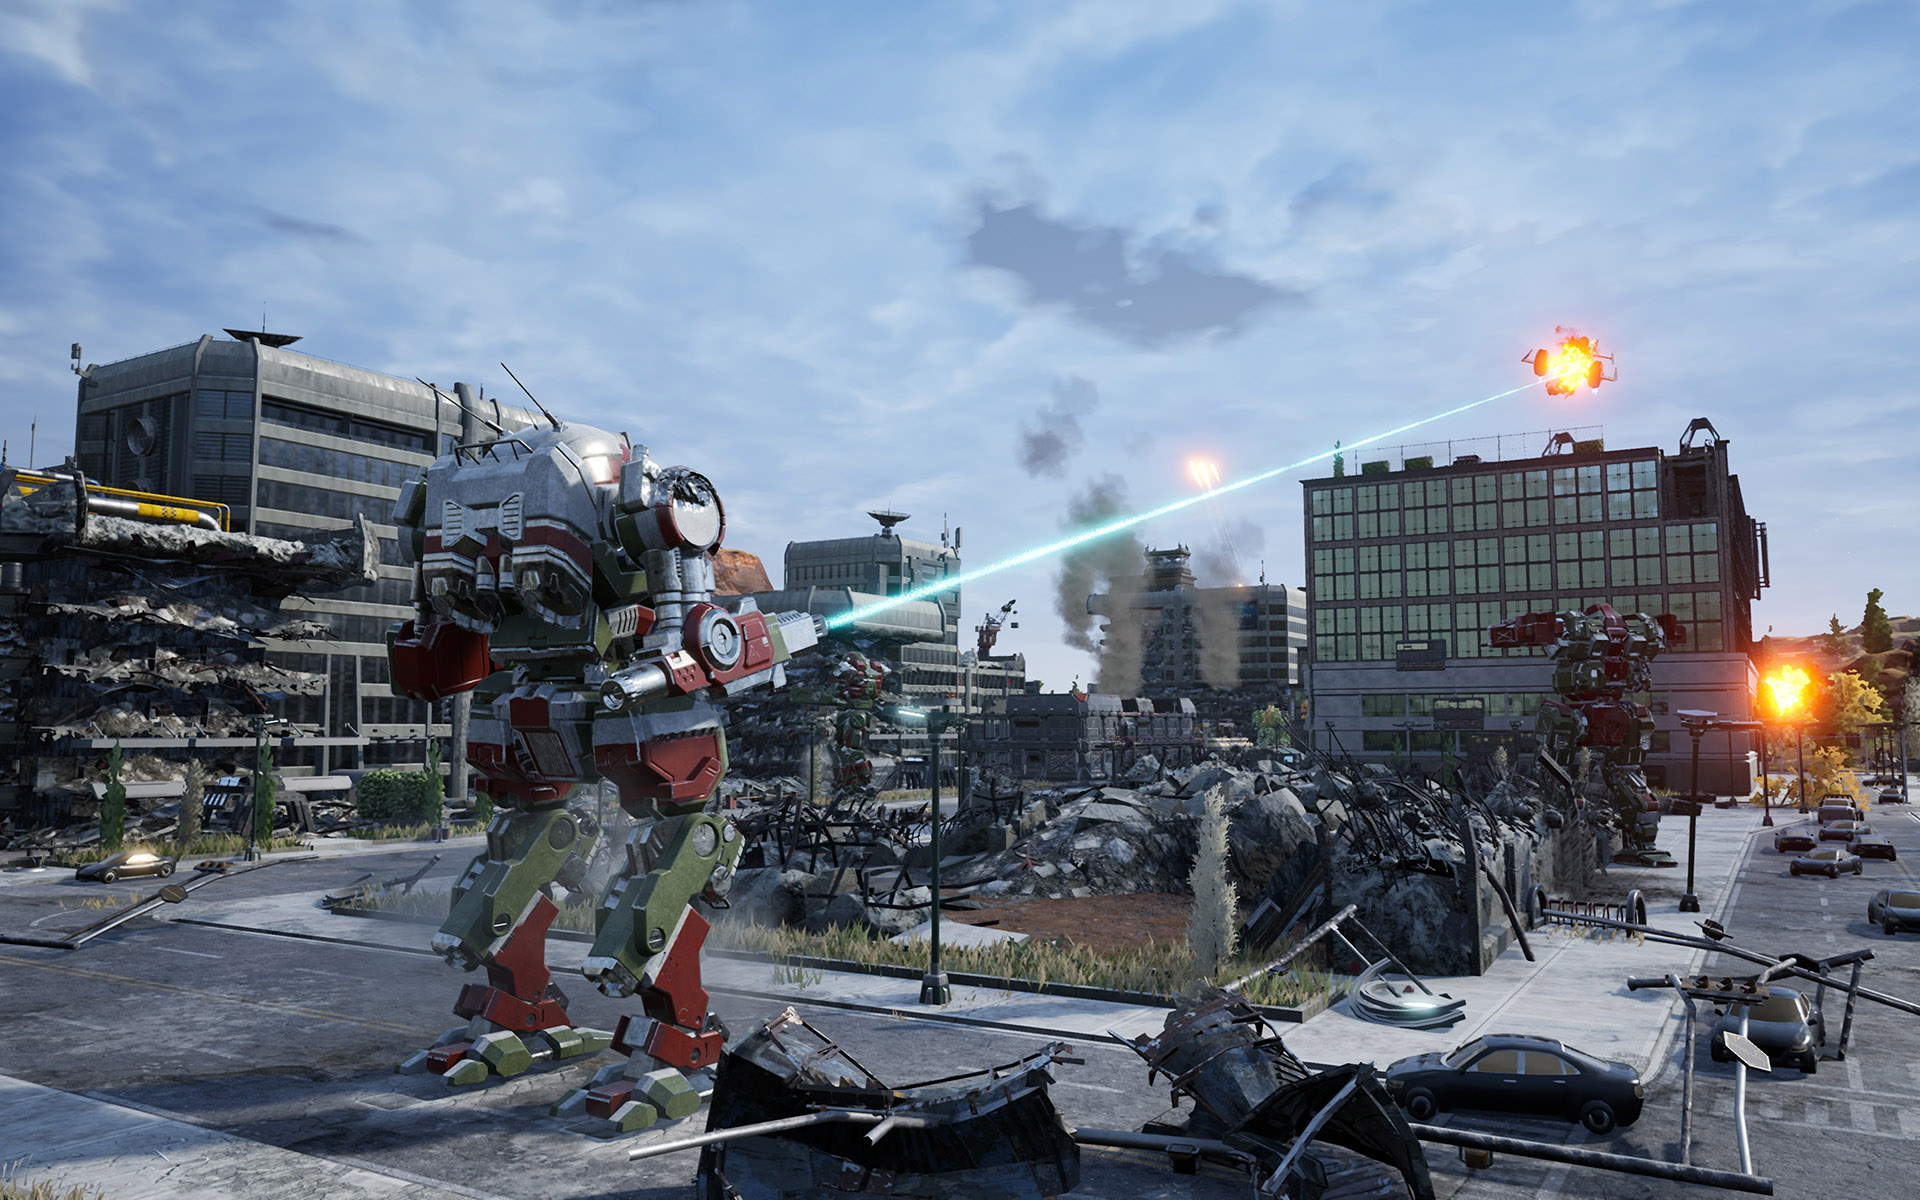 MechWarrior 5: Mercenaries Brings Tactical Mech-Driven Warfare to Steam and Xbox This May